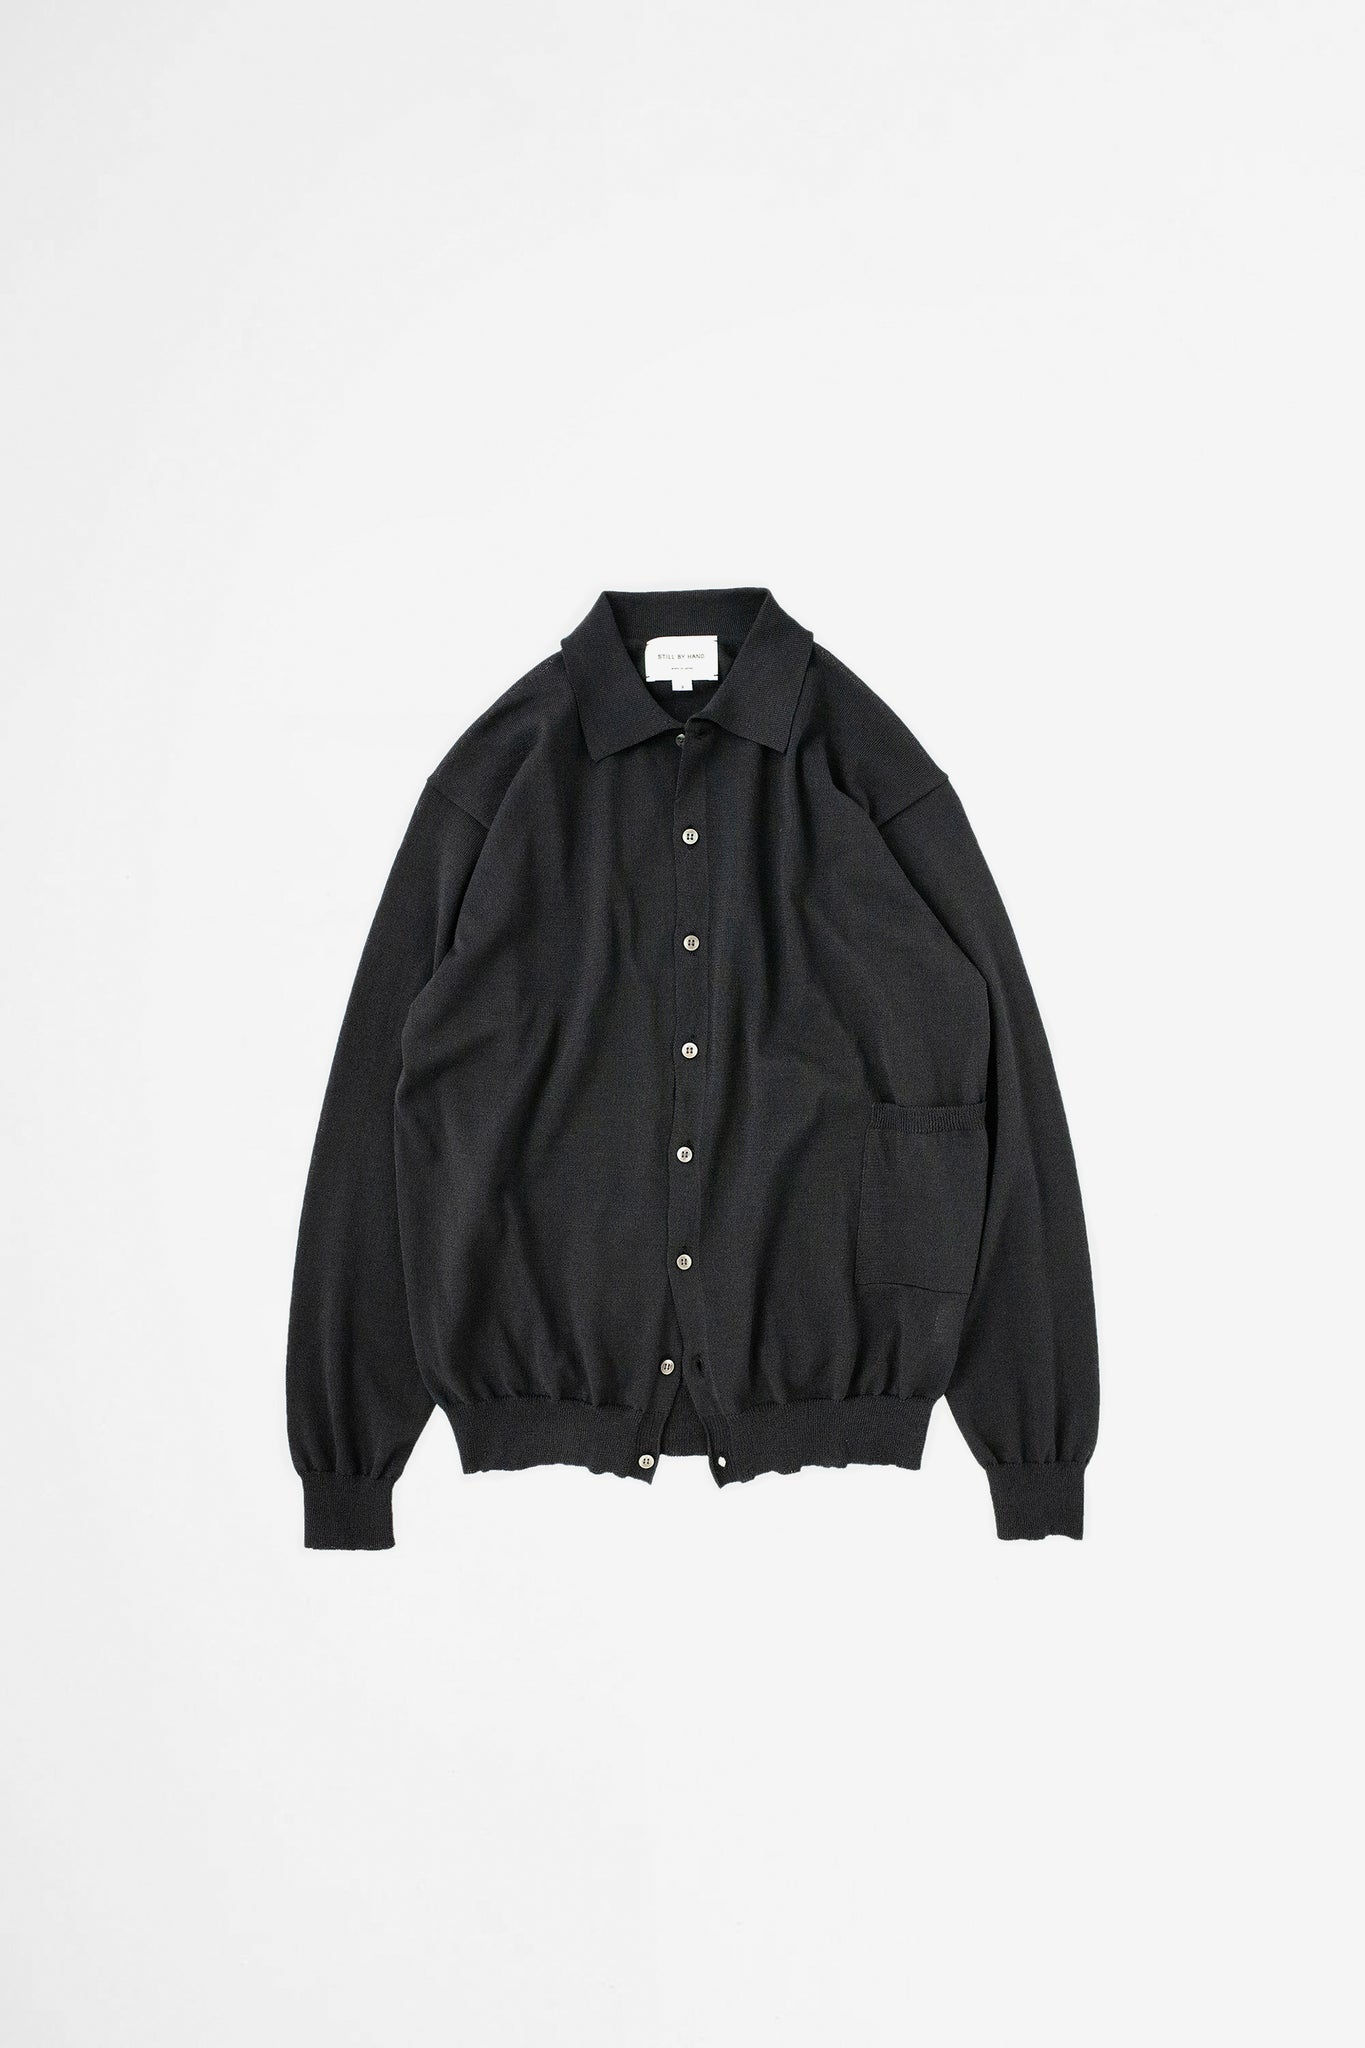 Spread collar cardigan ink black